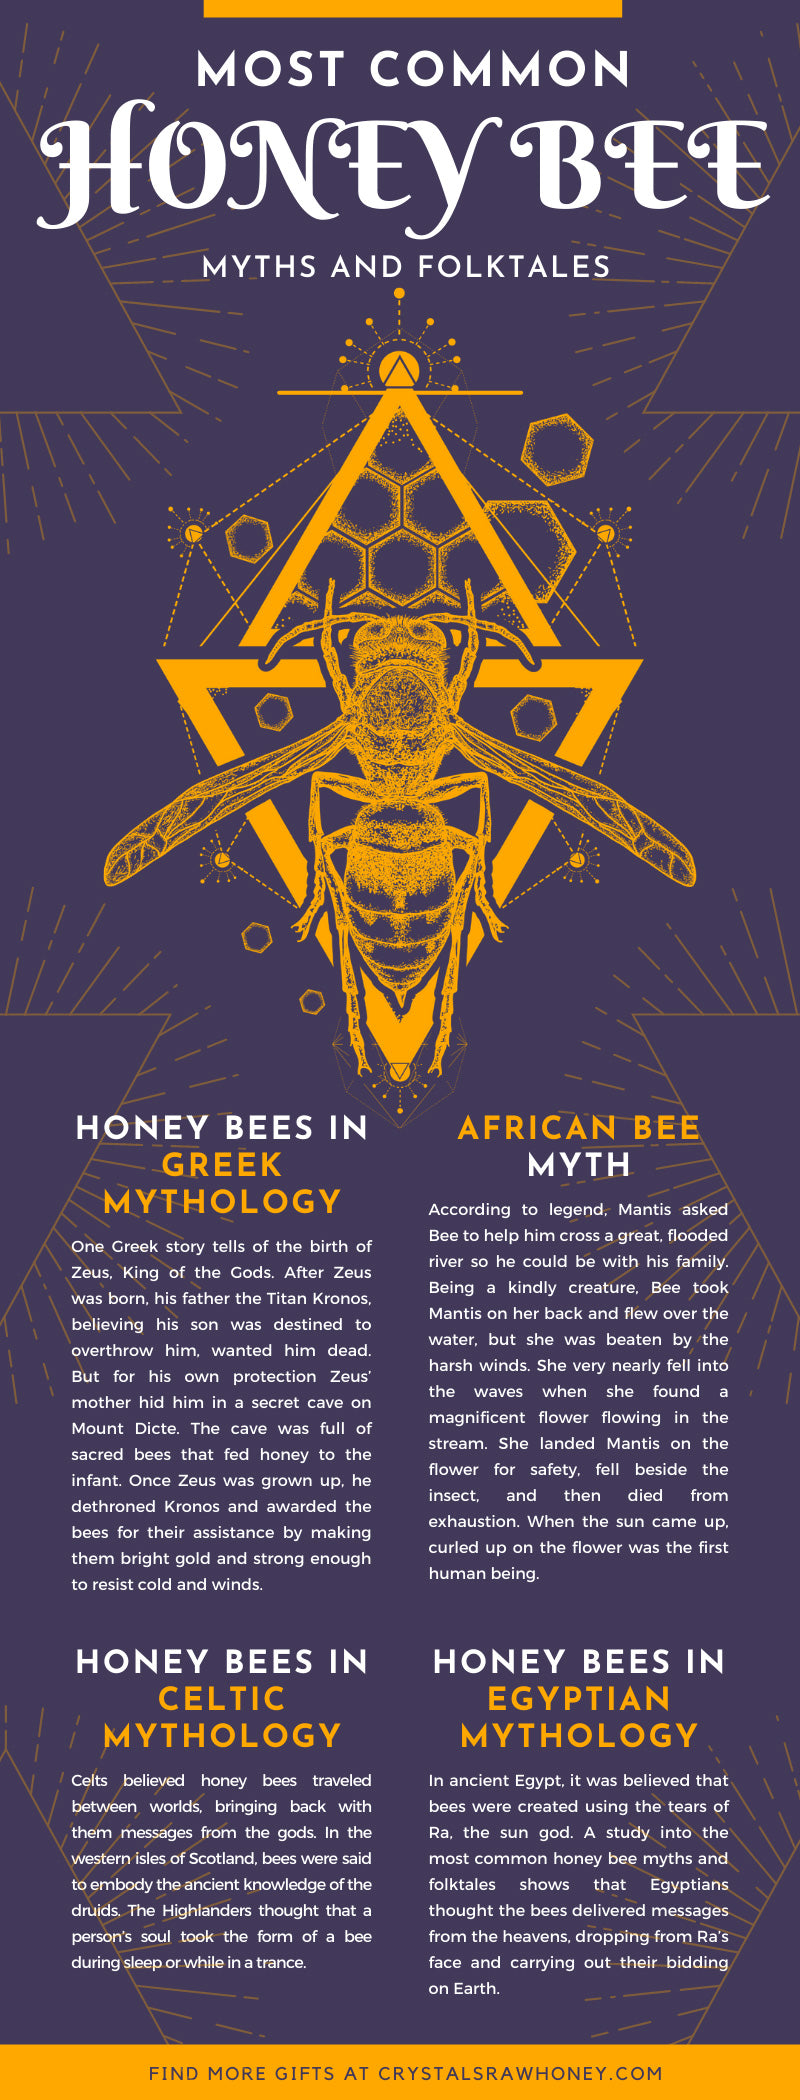 Most Common Honey Bee Myths and Folktales